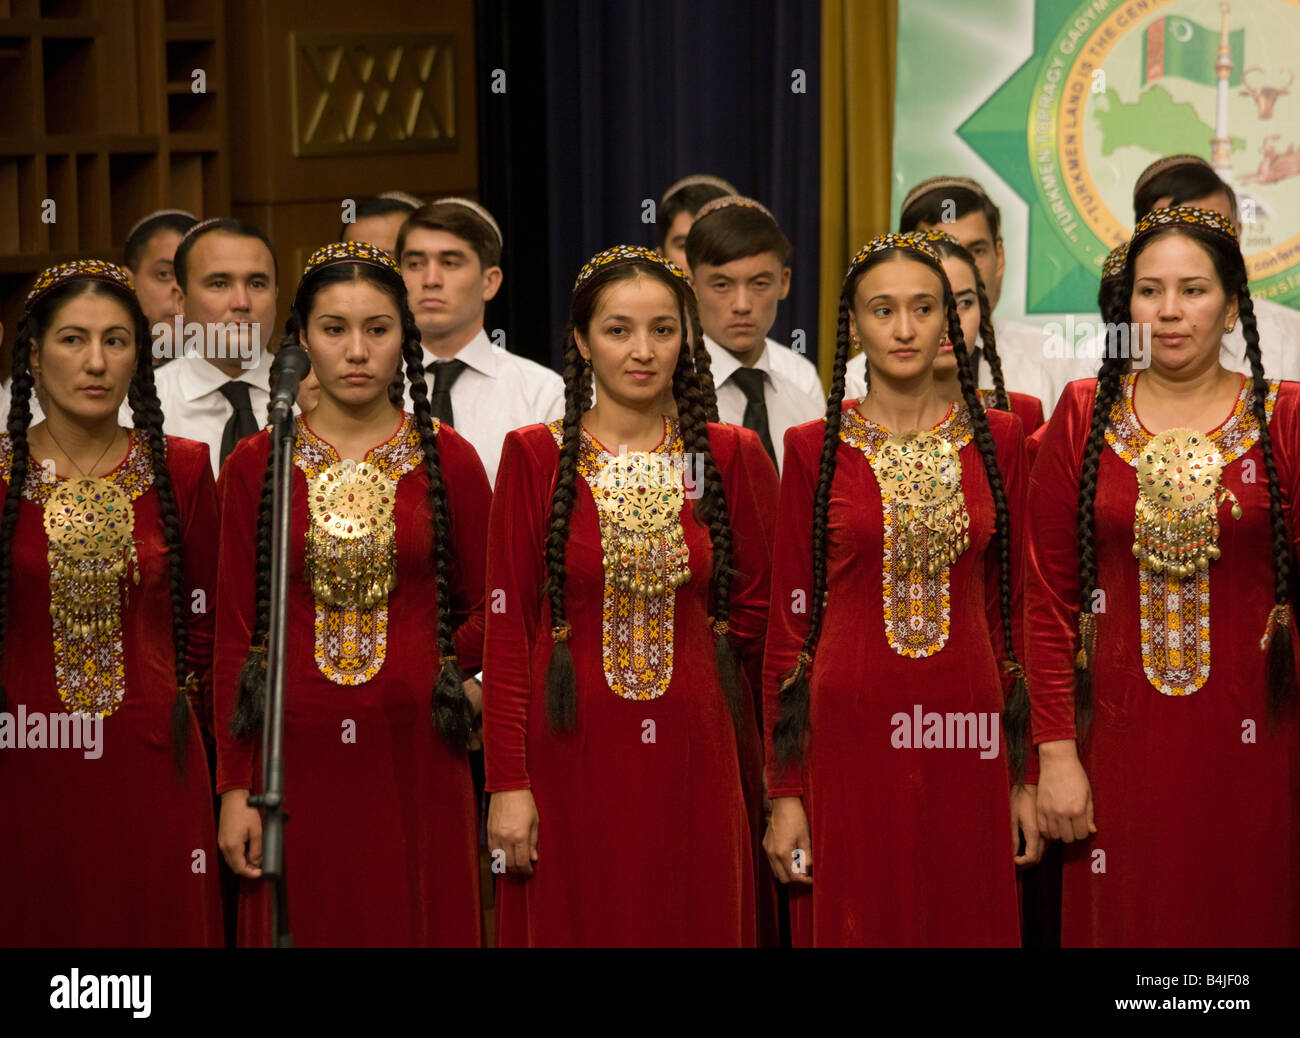 choir in native costume at opening of international conference, Ashqabat, Turkmenistan - Stock Image